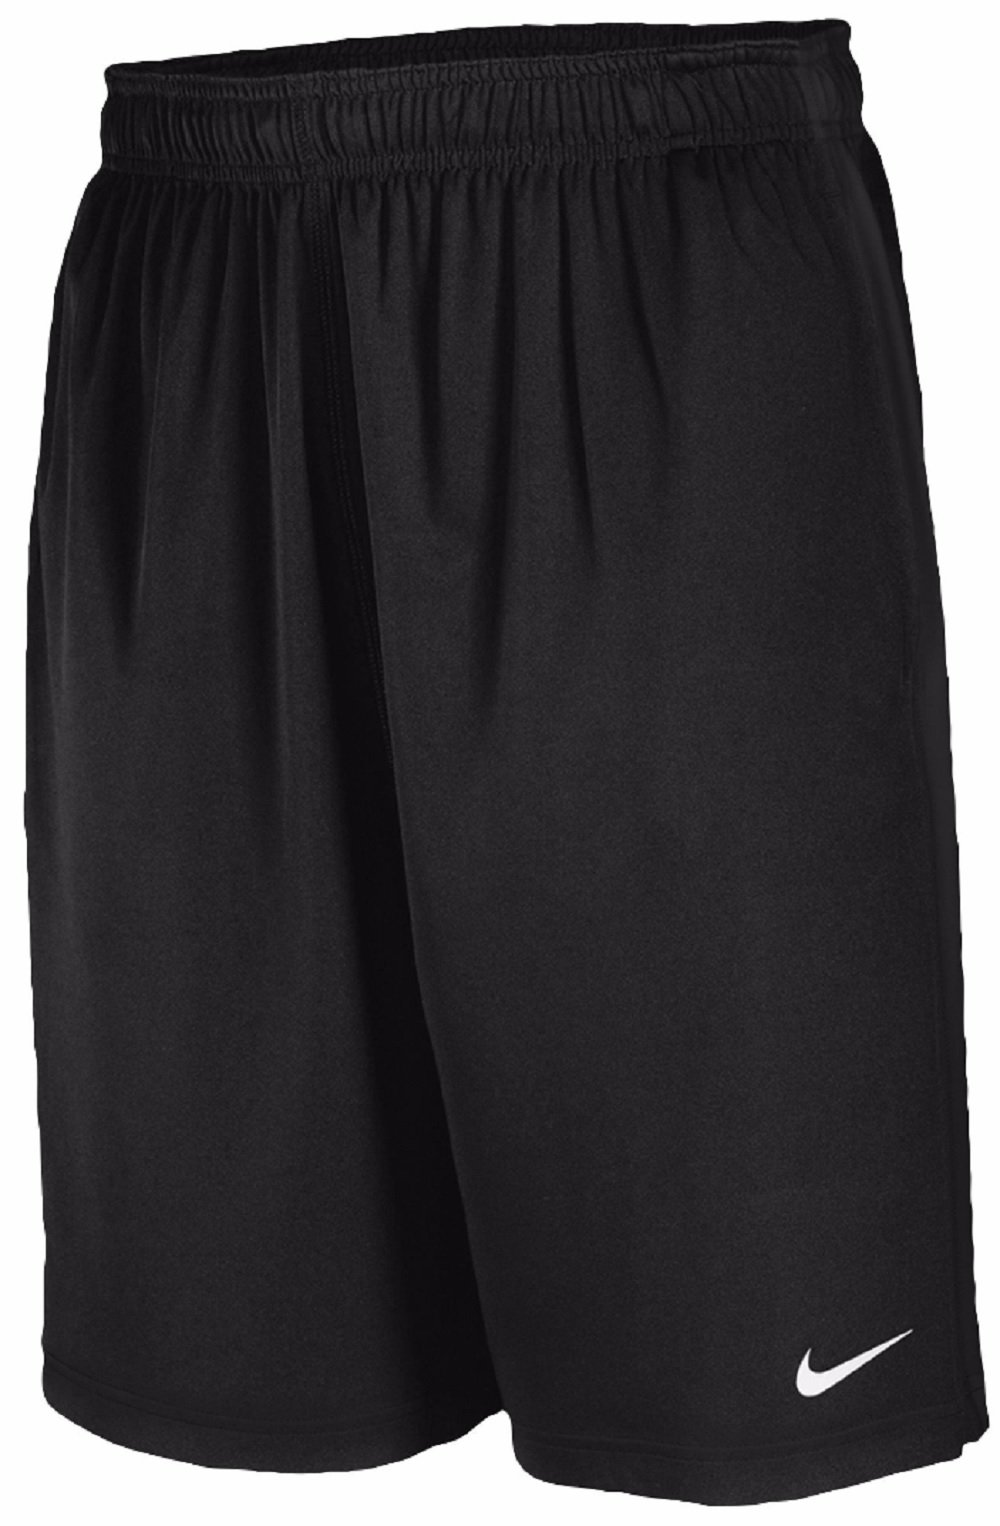 Nike Youth Boys Dry Fly Shorts (Small, Black) by Nike